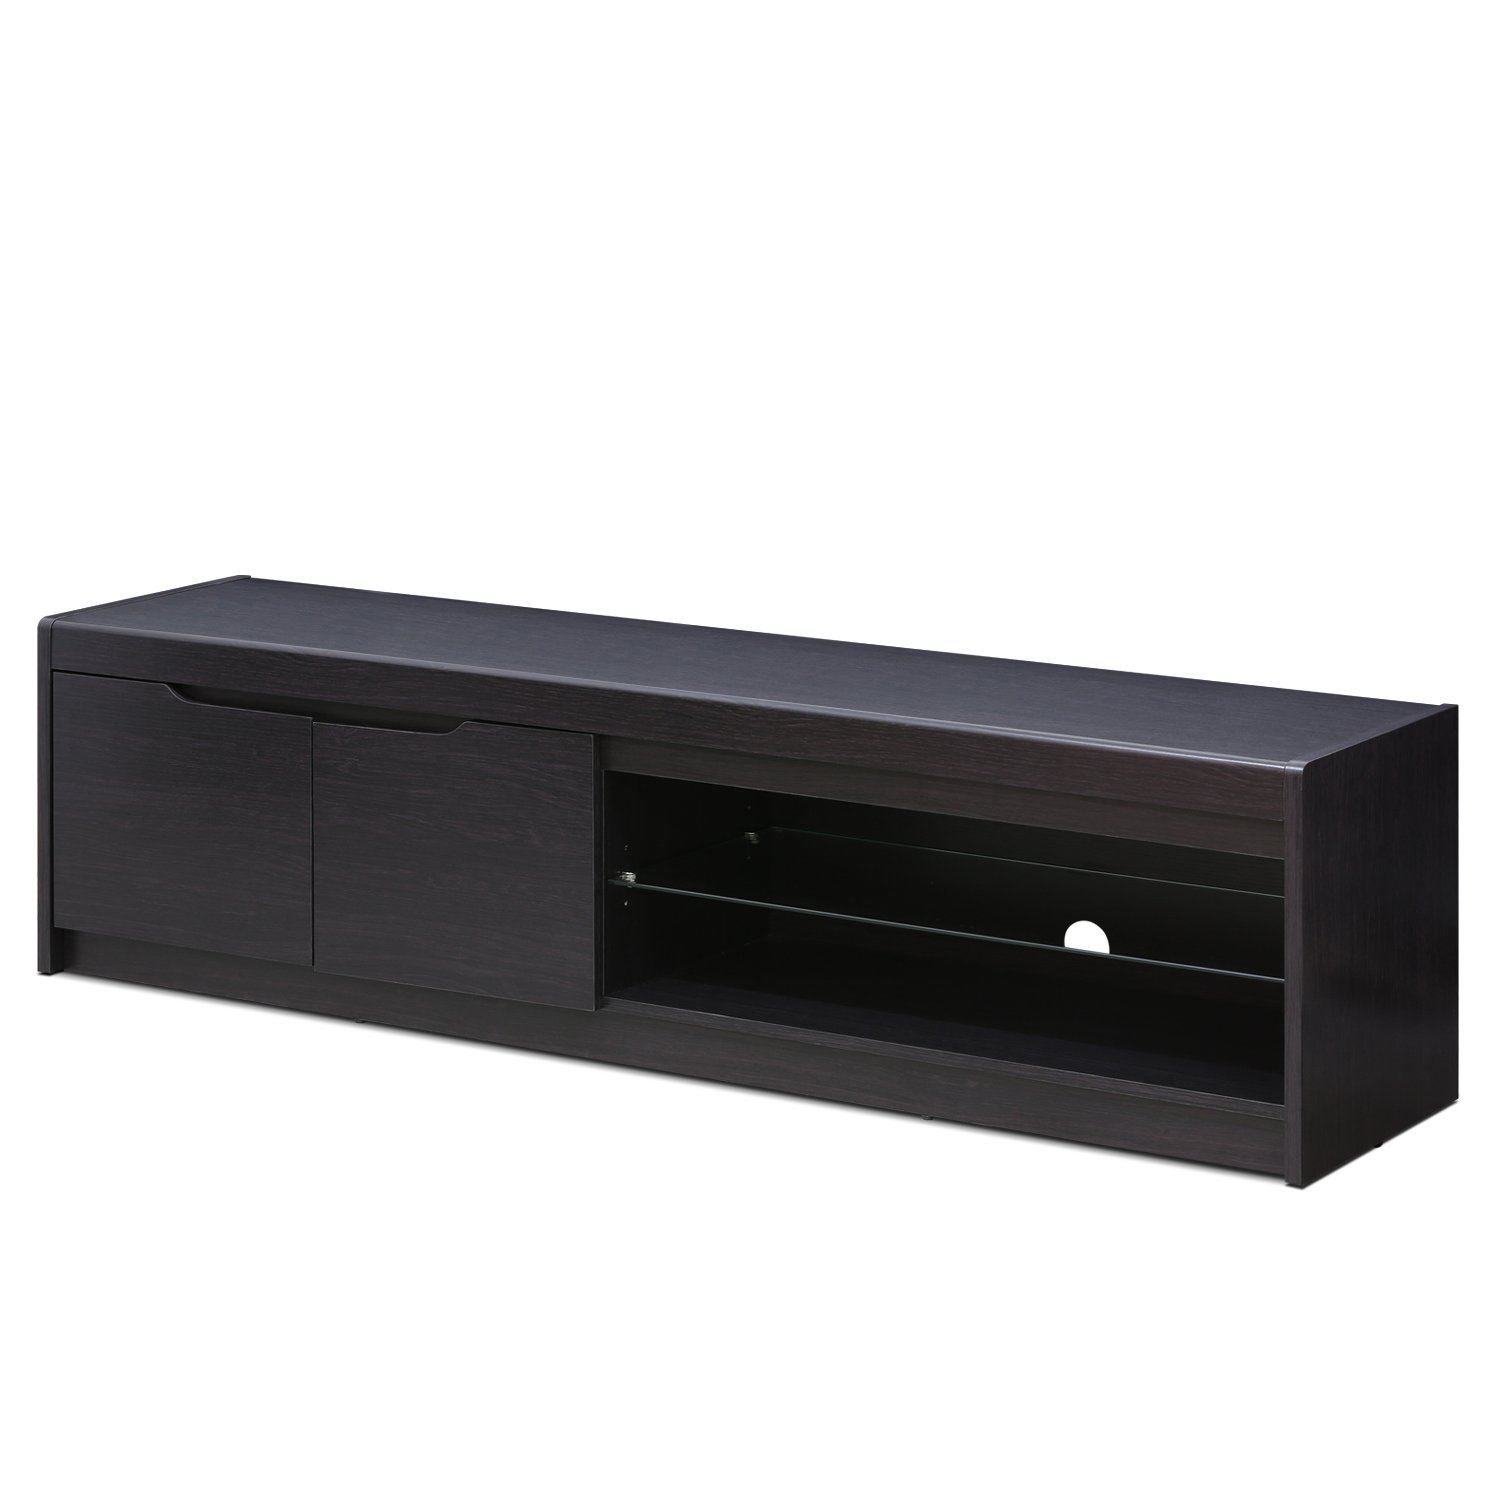 FURINNO FVR1707WG Indo Entertainment Center for TV up to 65 Inch with 2 Doors and Glass Shelf, Wenge